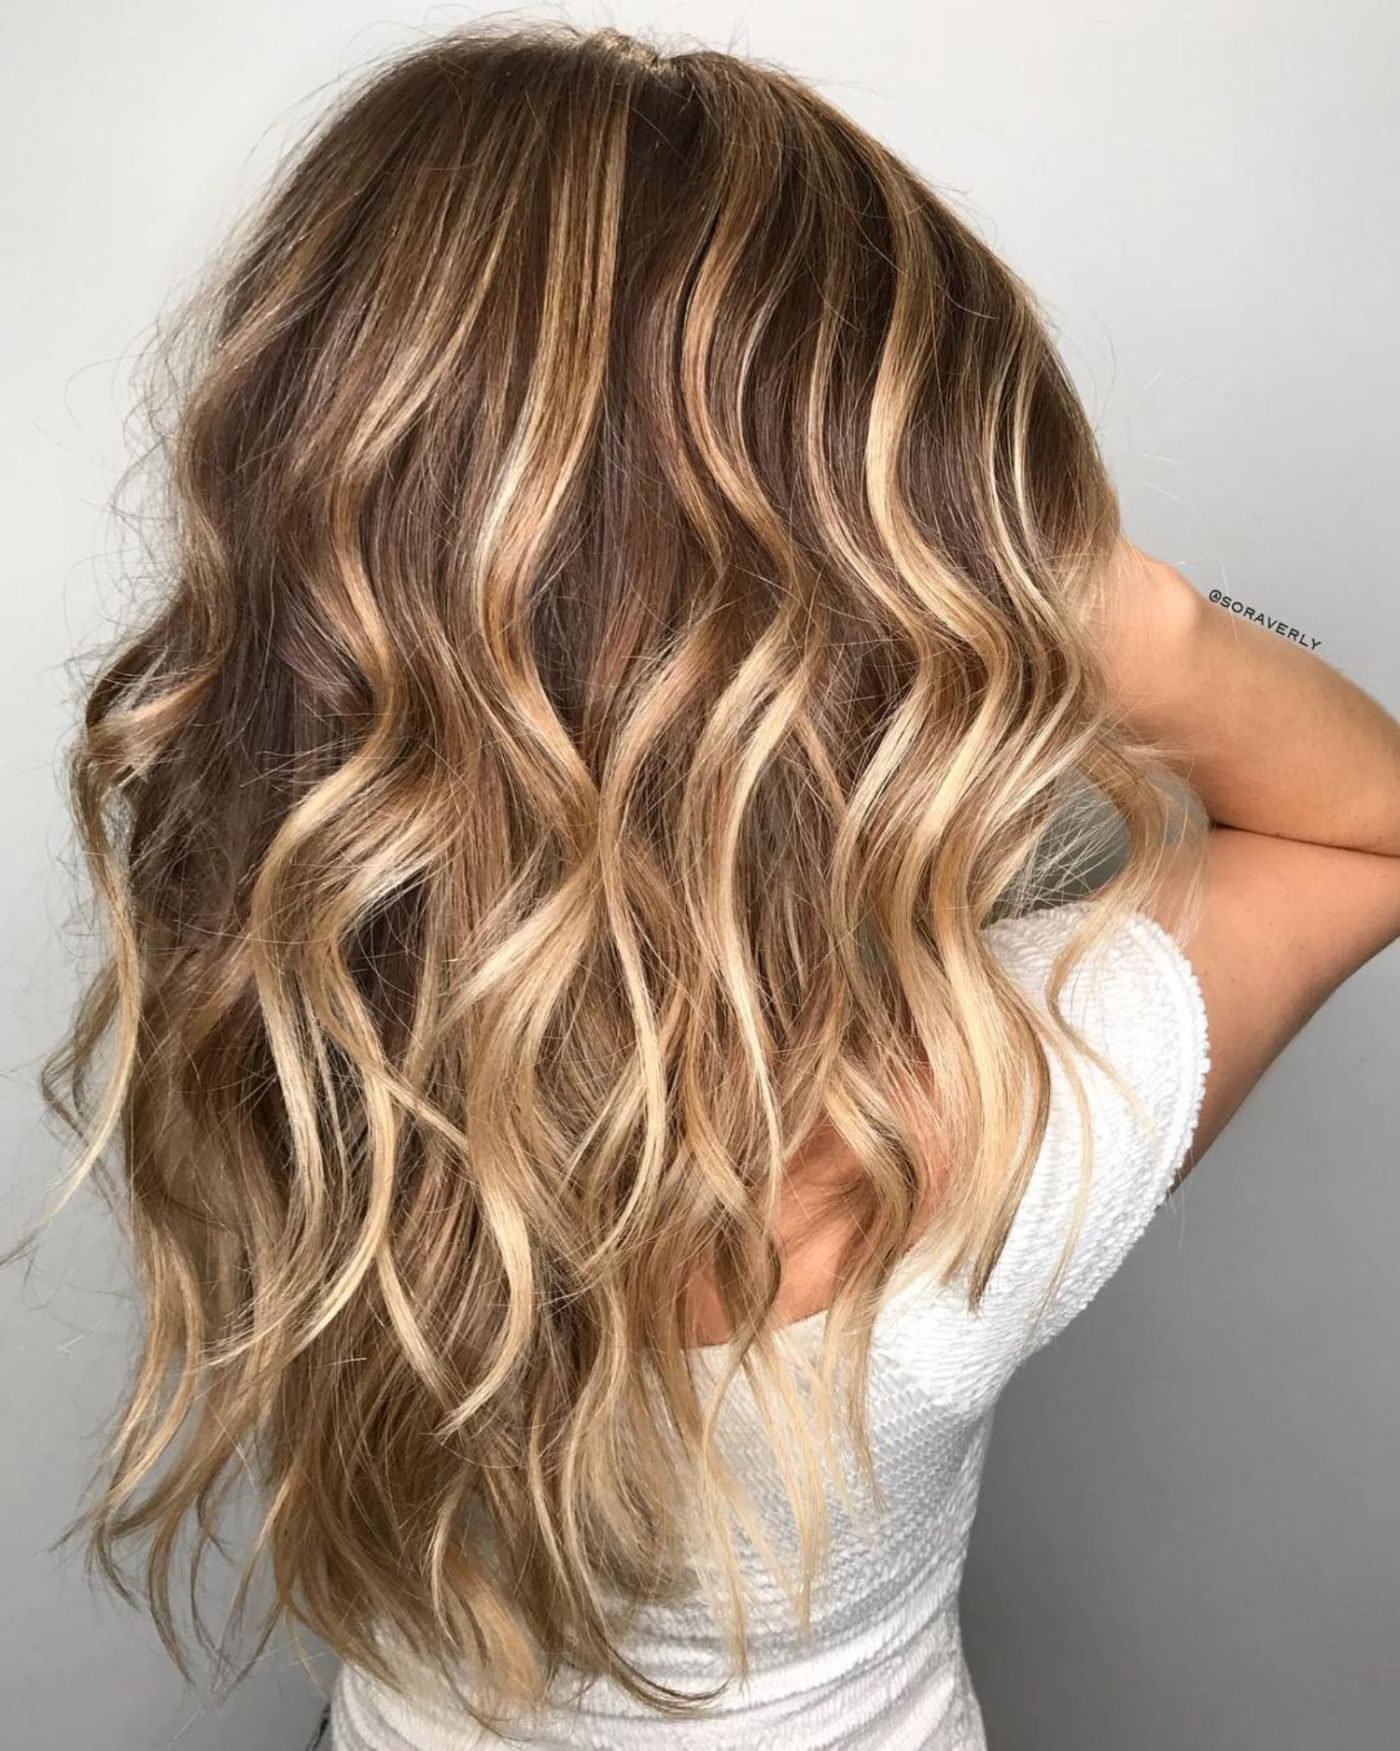 50 Ideas For Light Brown Hair With Highlights And Lowlights Brown Blonde Hair Brown Hair With Highlights Brown Hair With Highlights And Lowlights